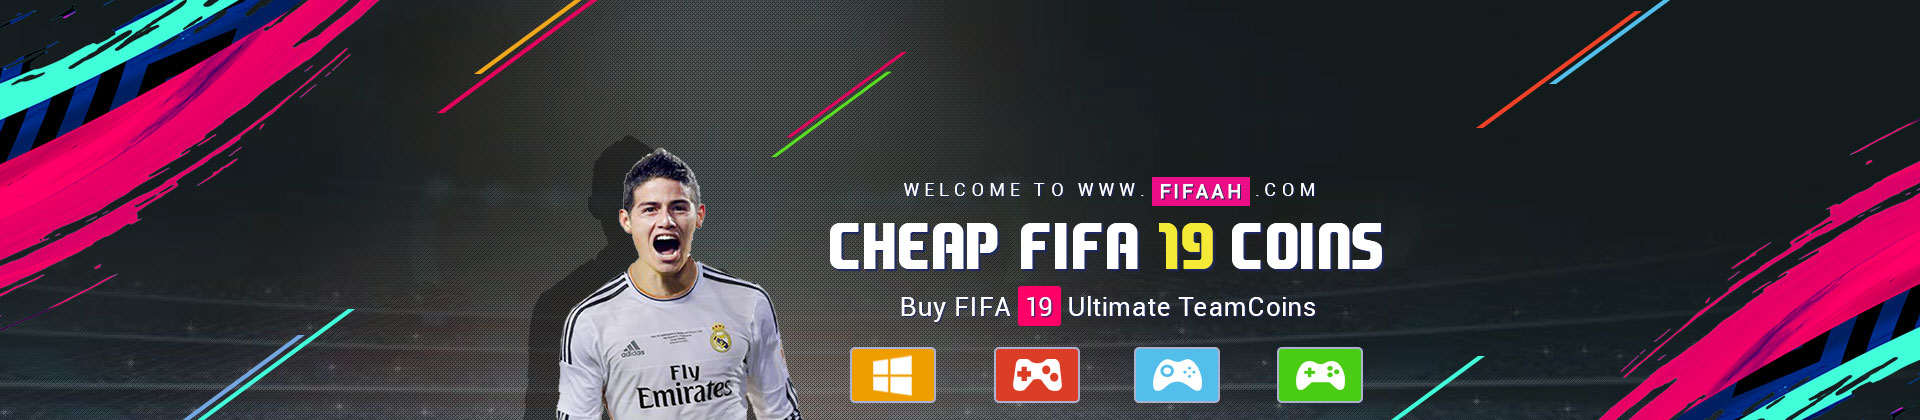 Top FIFA 19 Coins Store - FIFAAH.COM